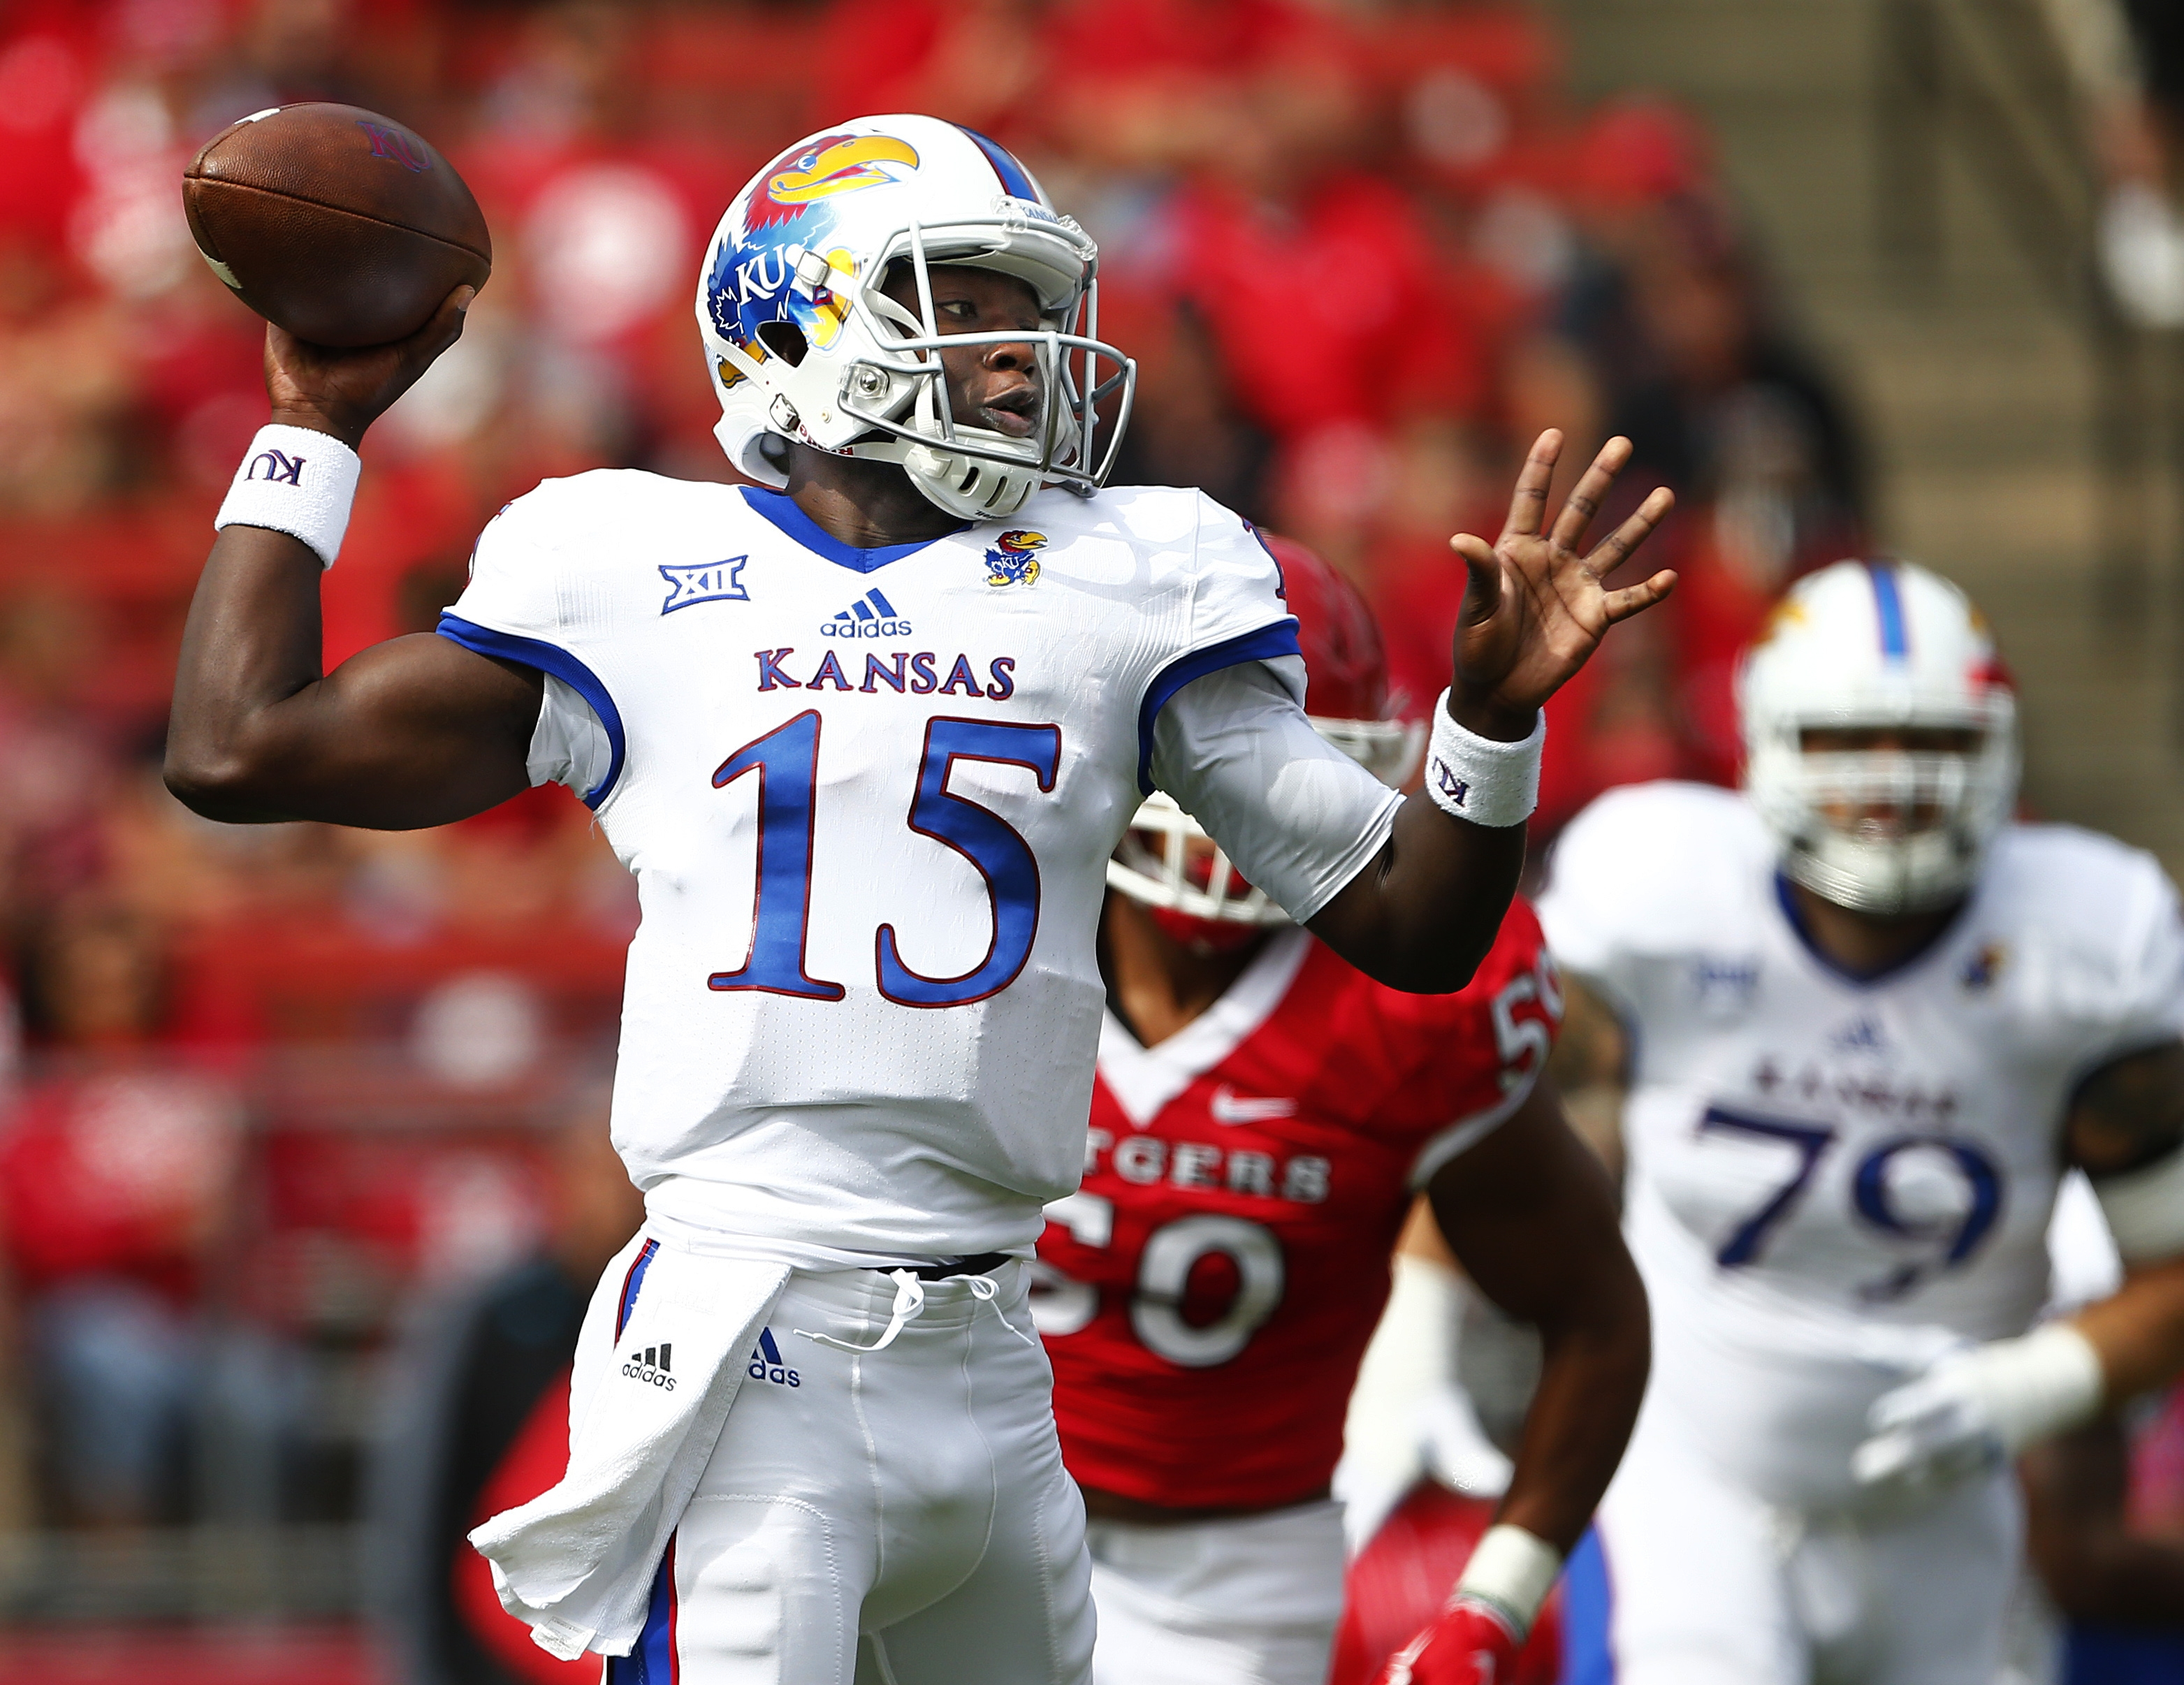 FILE - In this Sept. 26, 2015, file photo, Kansas quarterback Deondre Ford (15) throws a pass against Rutgers during the first quarter of an NCAA college football game in Piscataway, N.J. Kansas quarterbacks Montell Cozart and Deondre Ford were granted ha